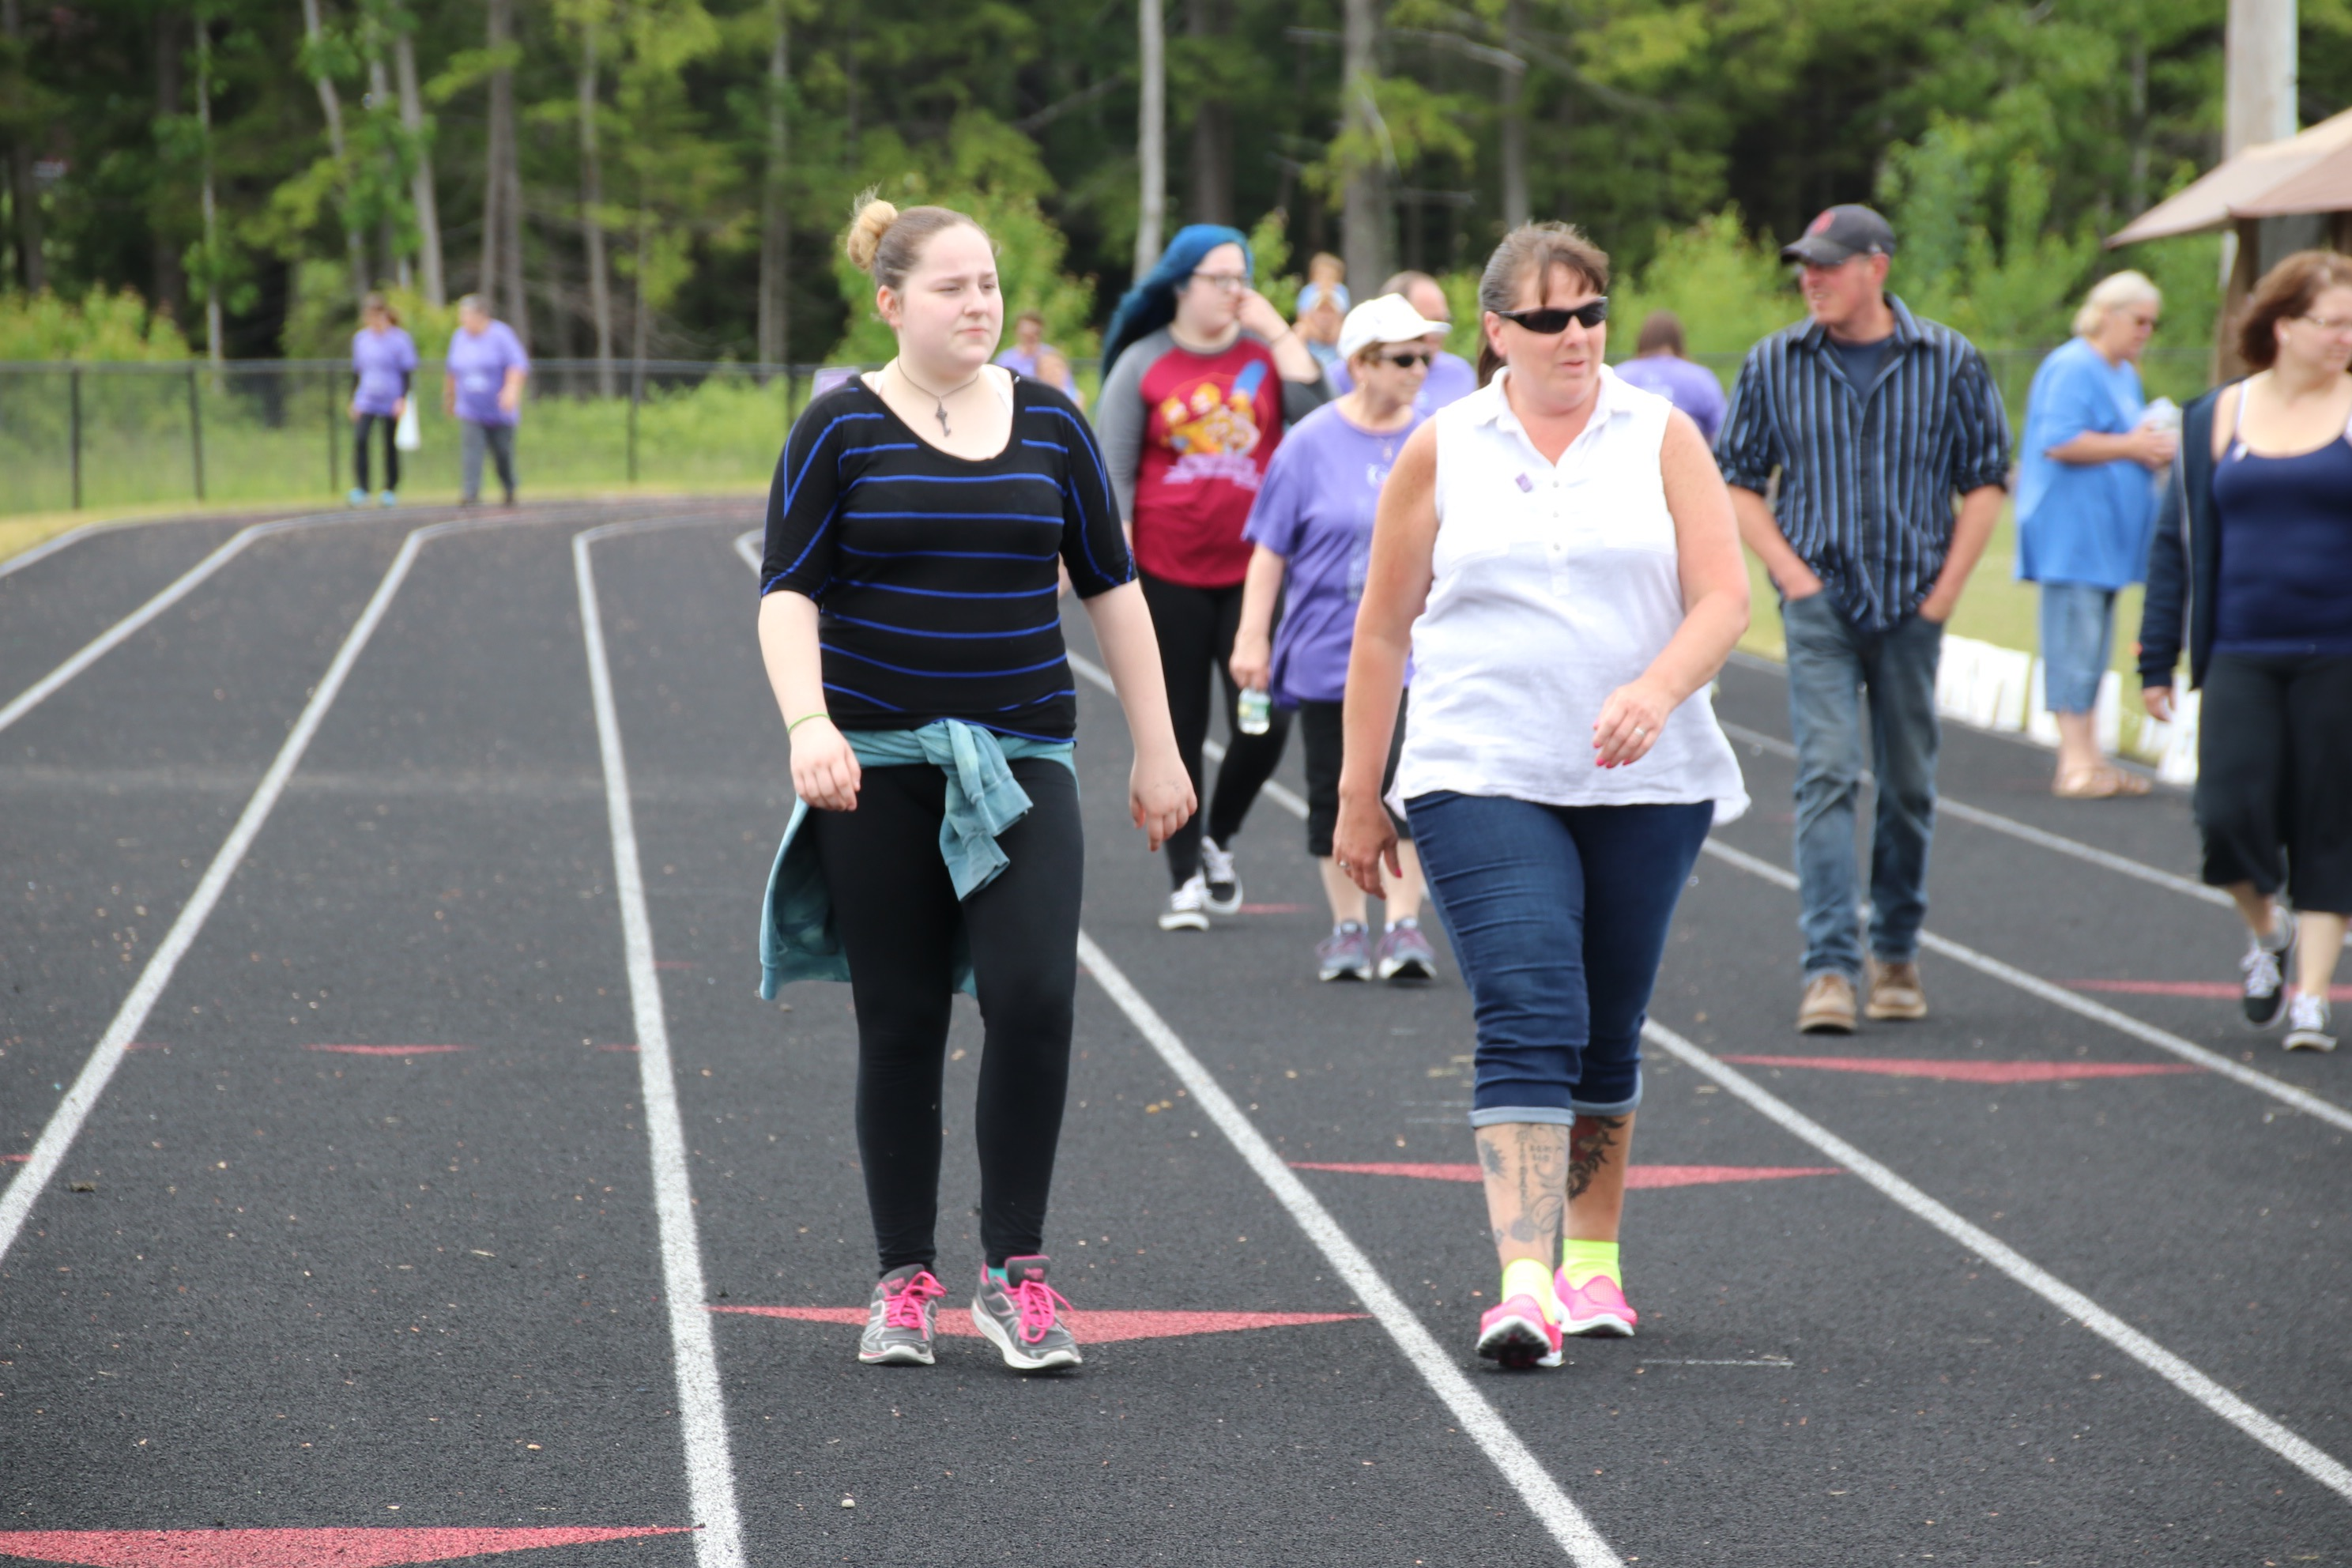 Ailia Haig left, and her aunt, Danielle Griffin, right, walk the track at Wells High School Saturday in the American Cancer Society's York County Relay for Life. They are walking for Danielle's husband Michael, who died of cancer in 2012. TAMMY WELLS/Journal Tribune